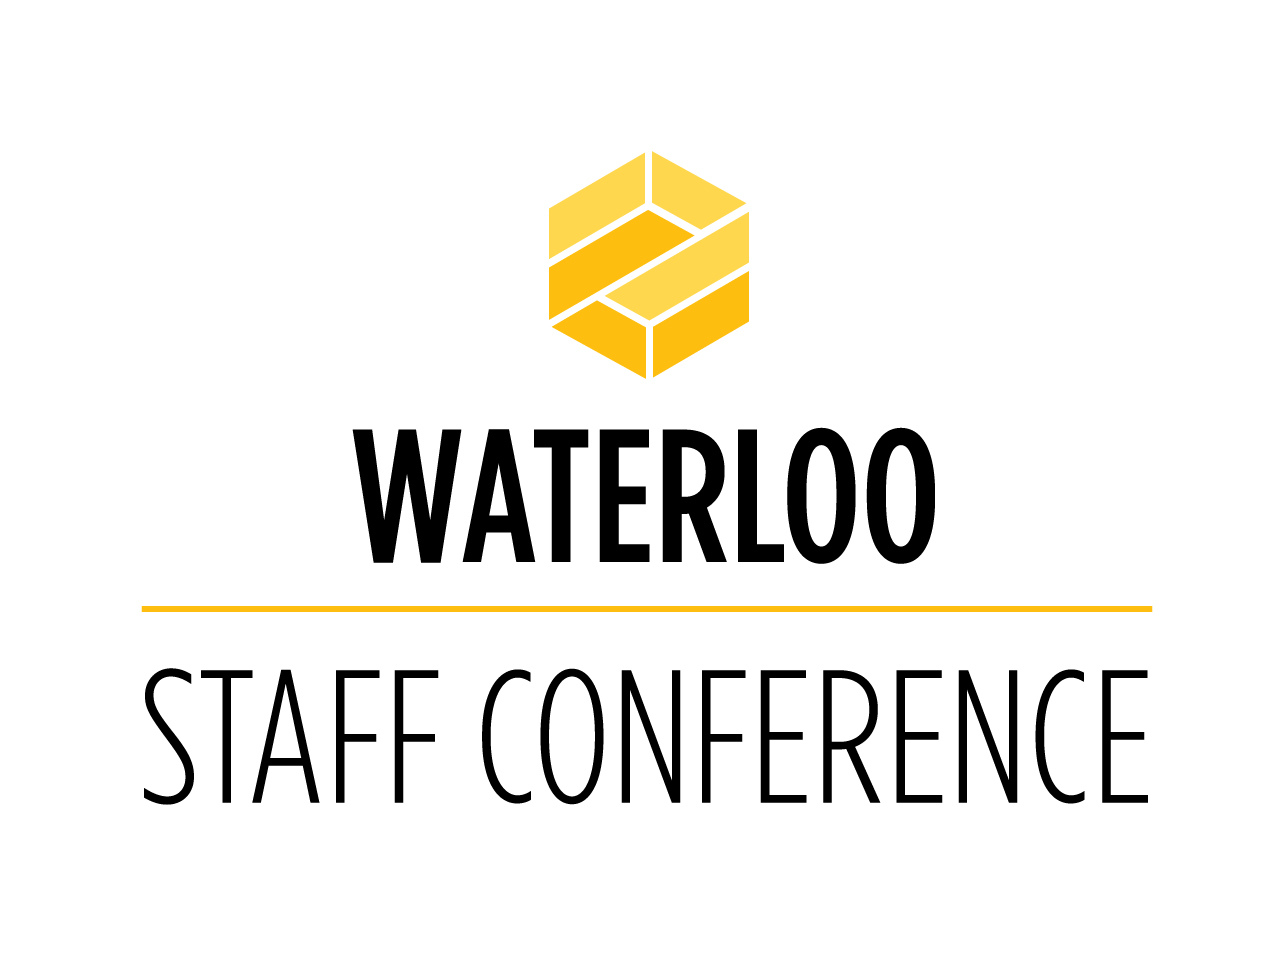 Waterloo Staff Conference